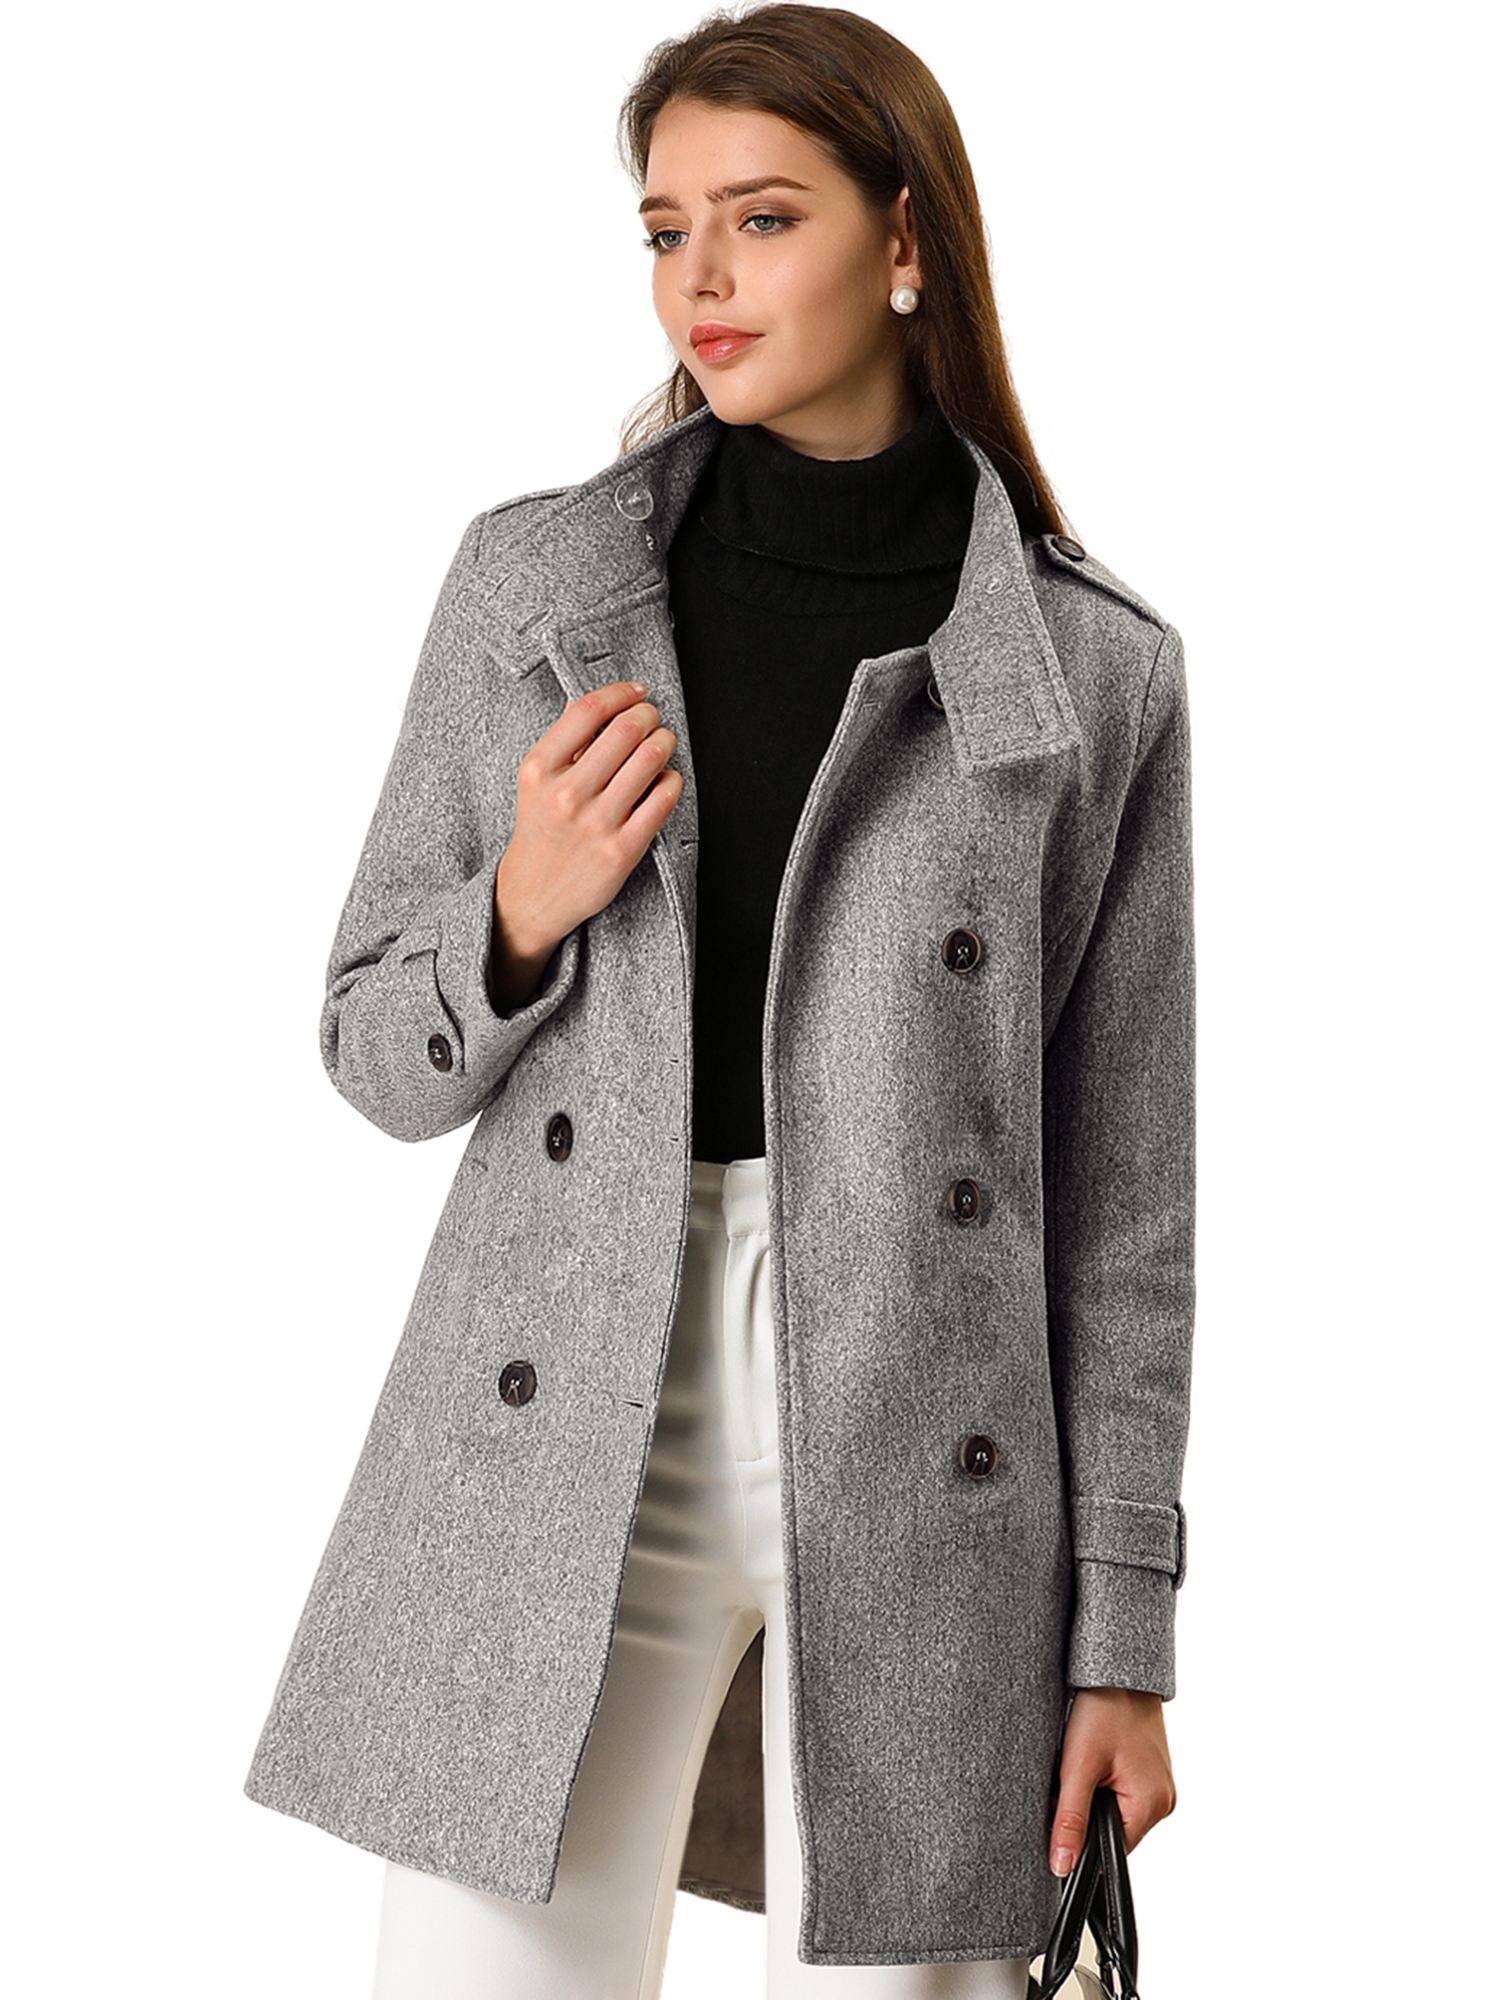 Women's Winter Stand Collar Double Breasted Outwear Trench Coat Gray S